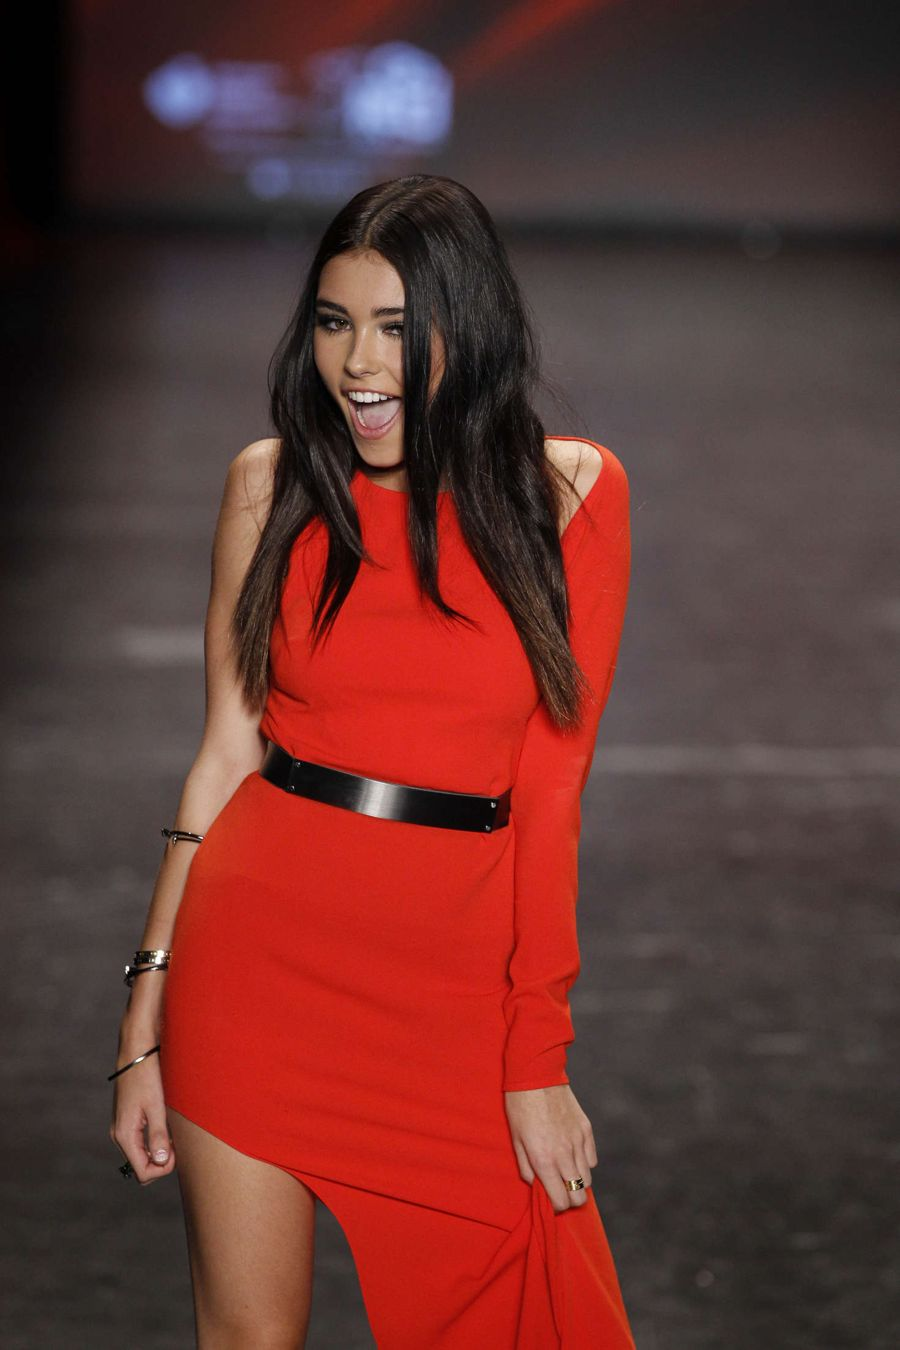 Madison Beer - The American Heart Association's Go Red